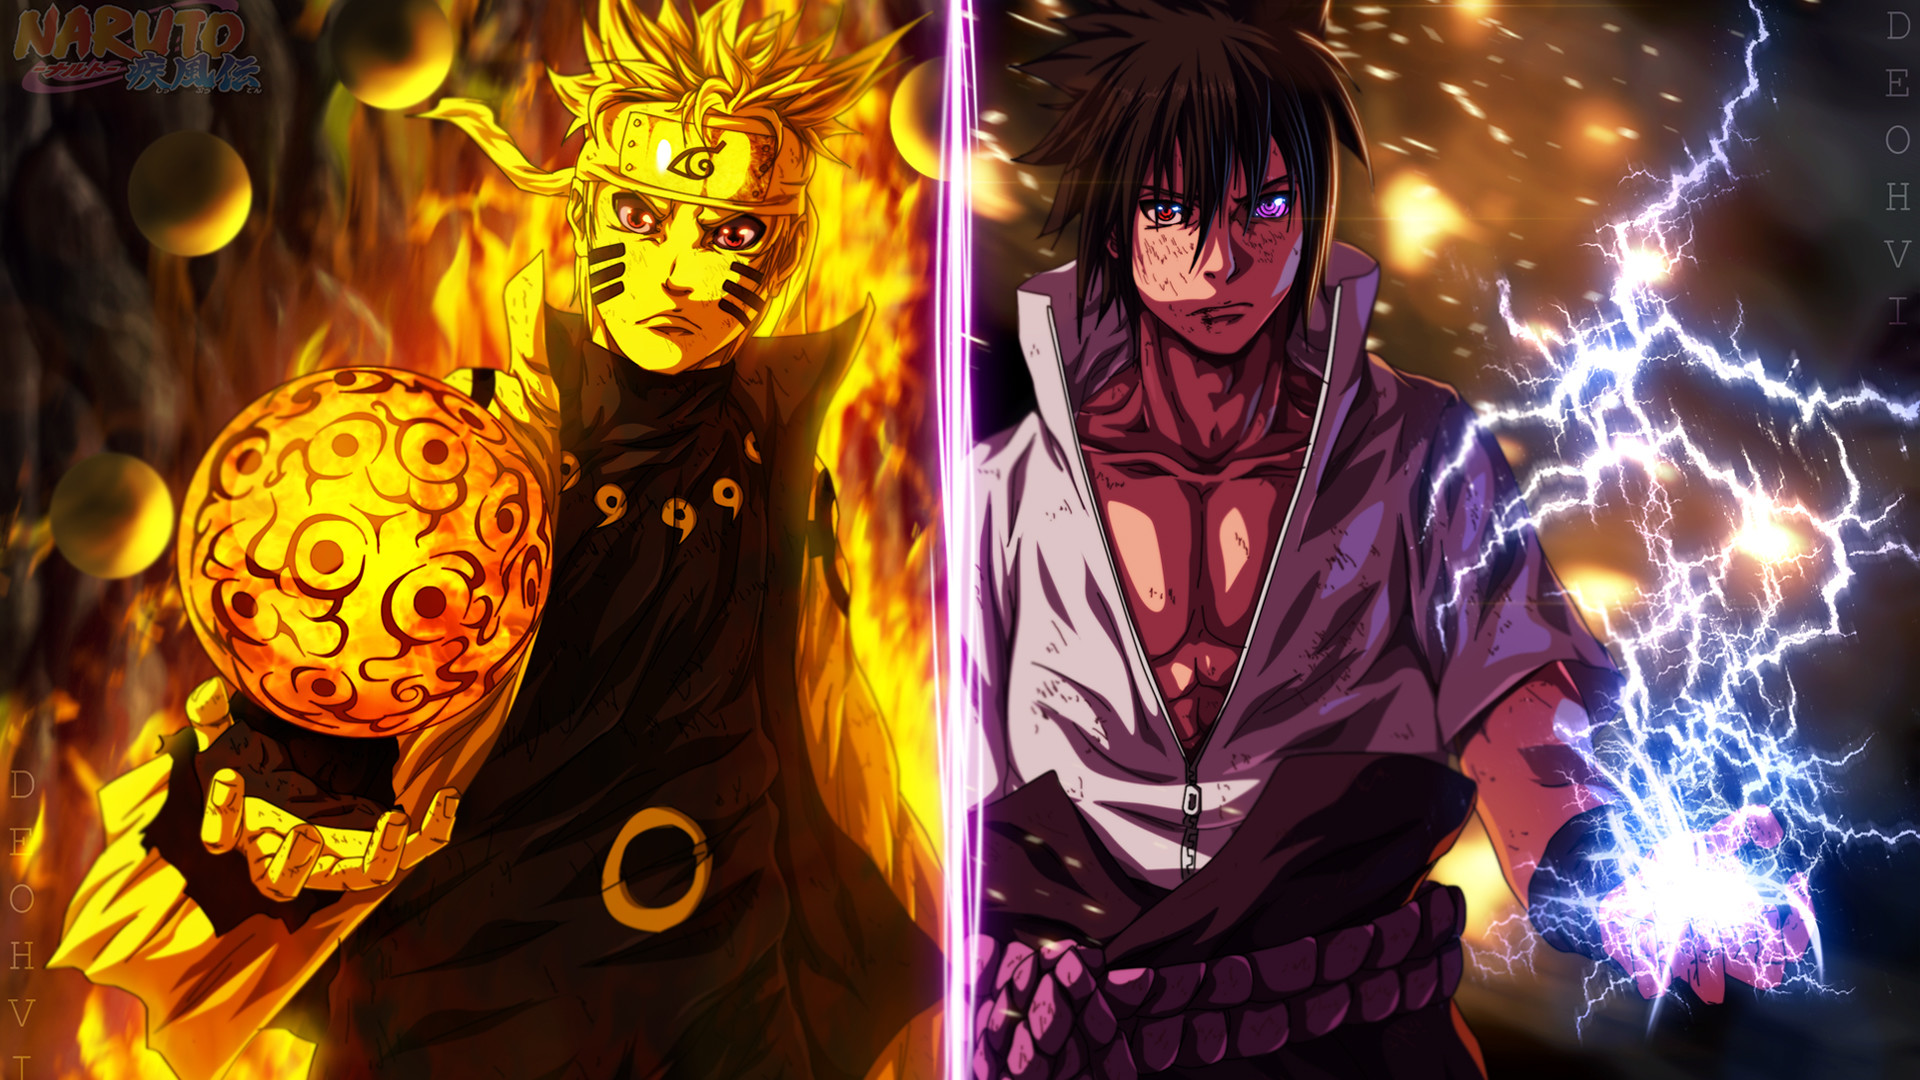 Naruto hd wallpapers 1080p 69 images for Immagini 1920x1080